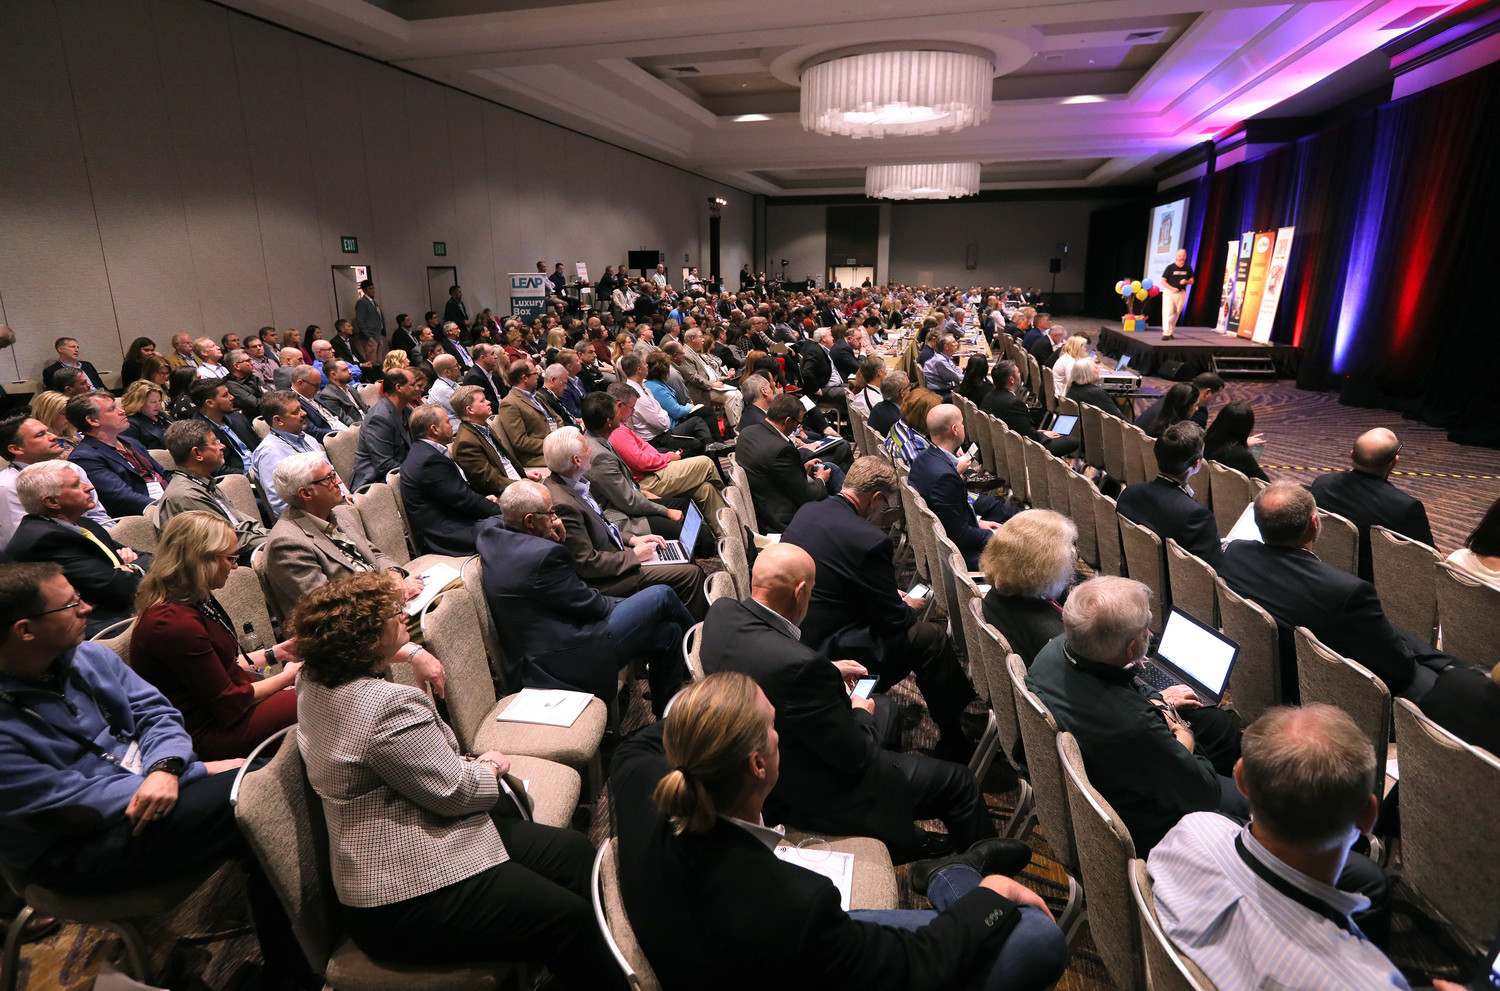 A record-breaking crowd at this year's Mega-Conference!